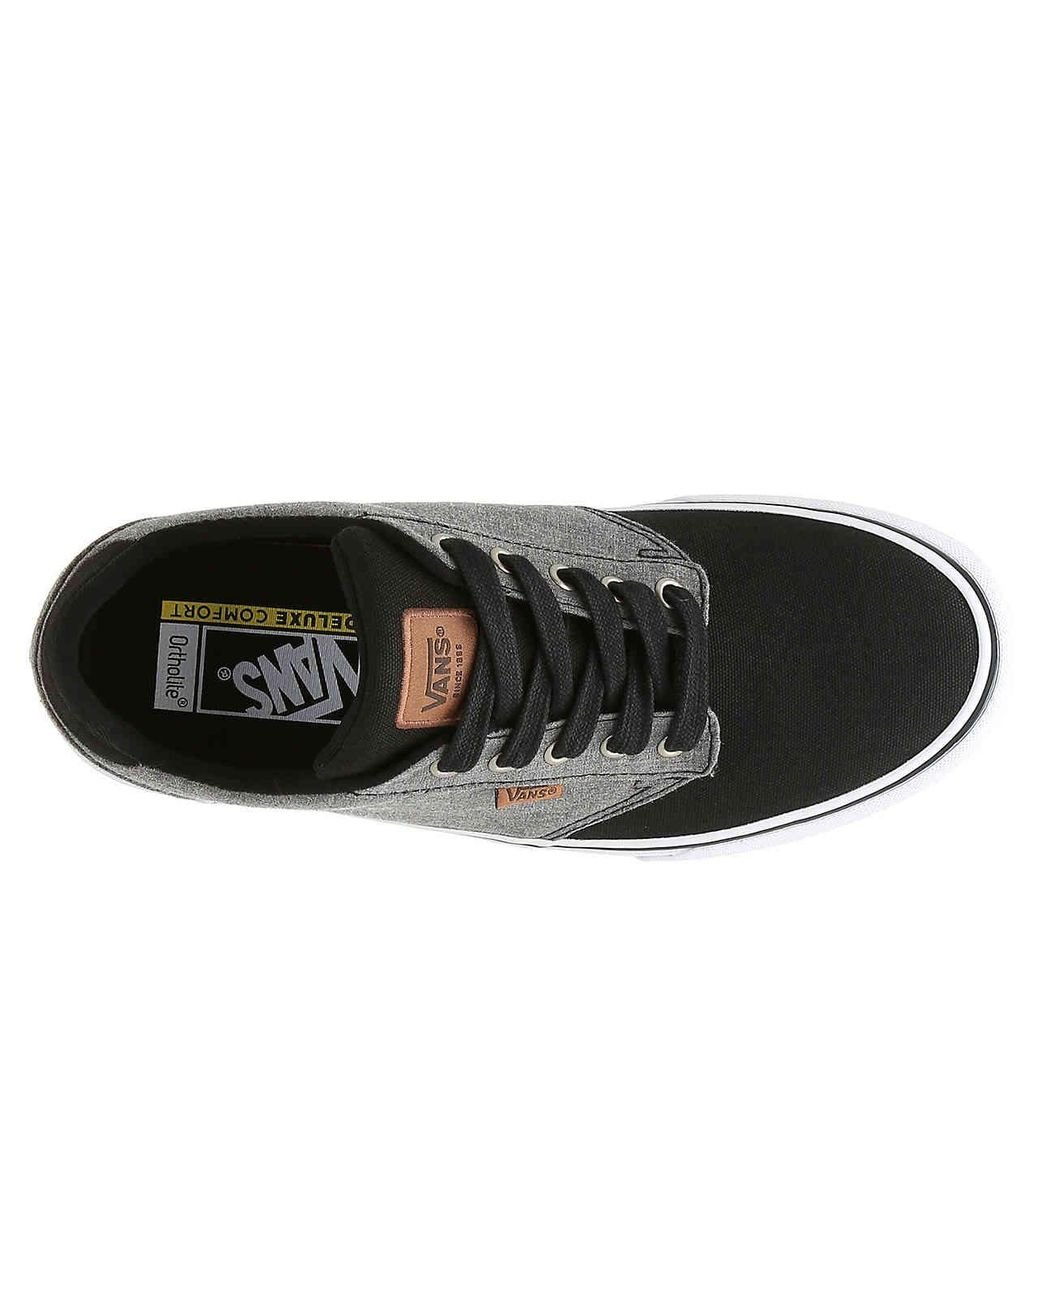 atwood deluxe sneaker